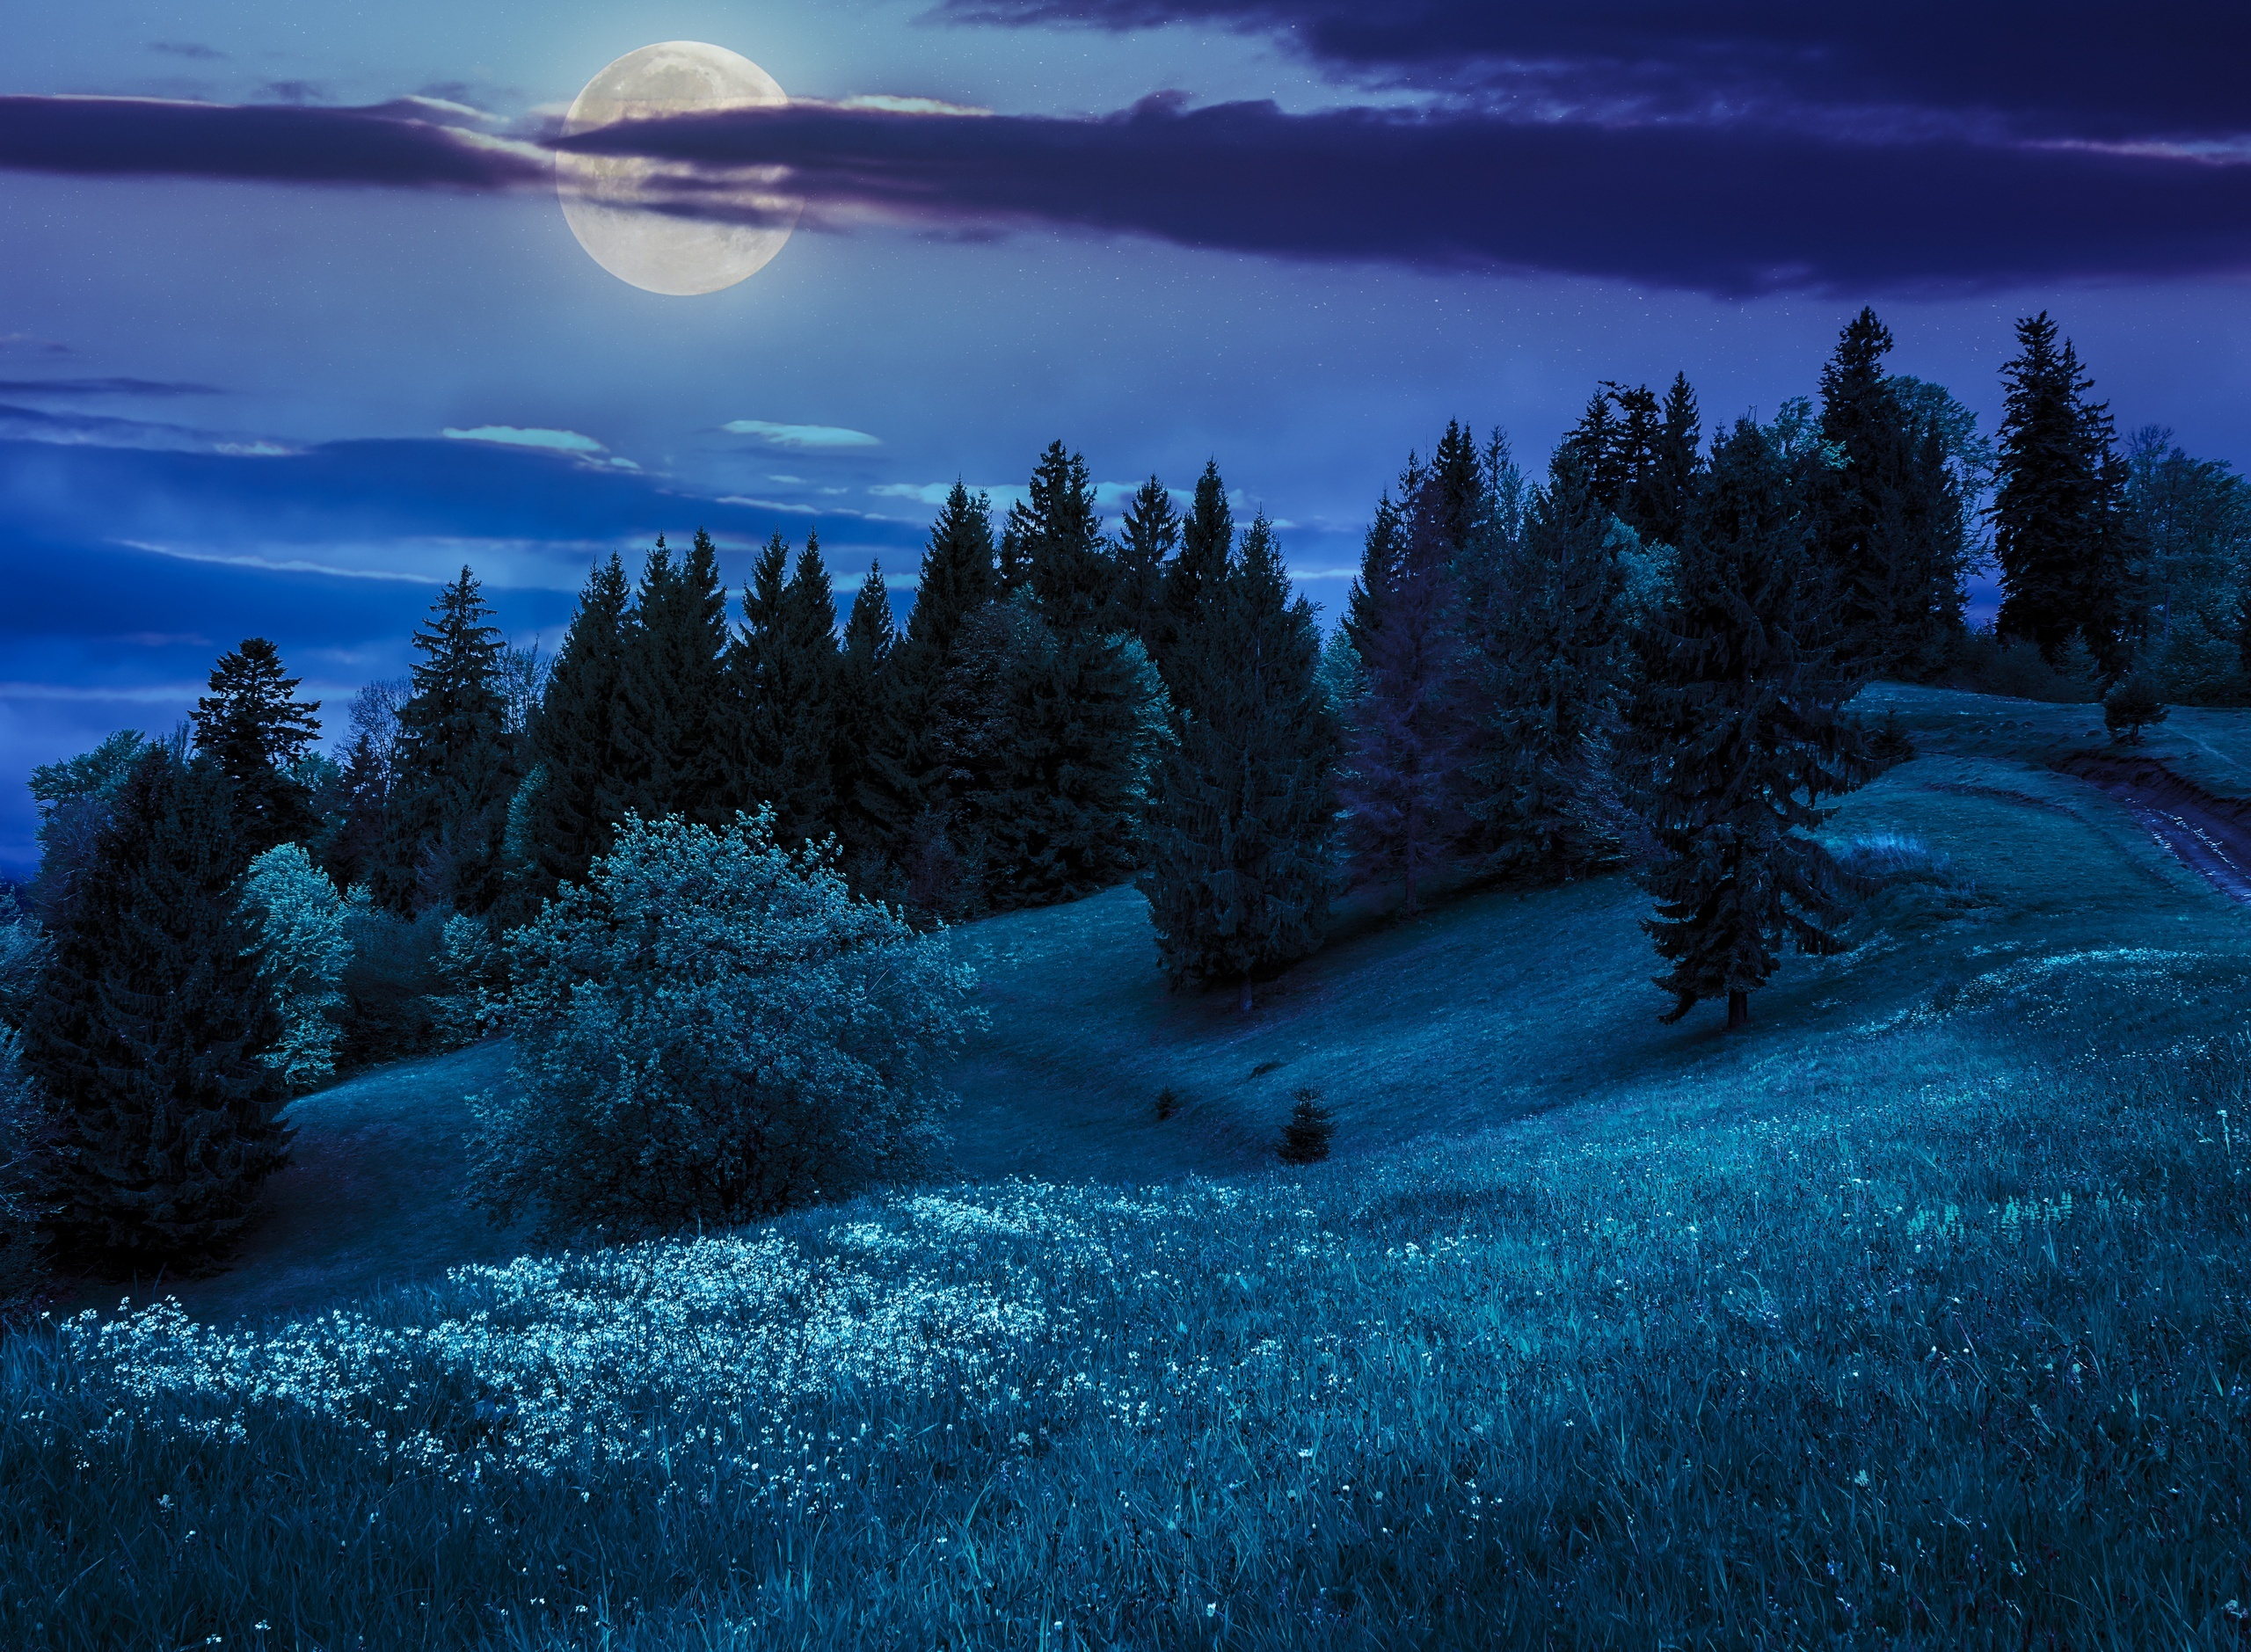 Full Moon on Winter Night HD Wallpaper  Background Image